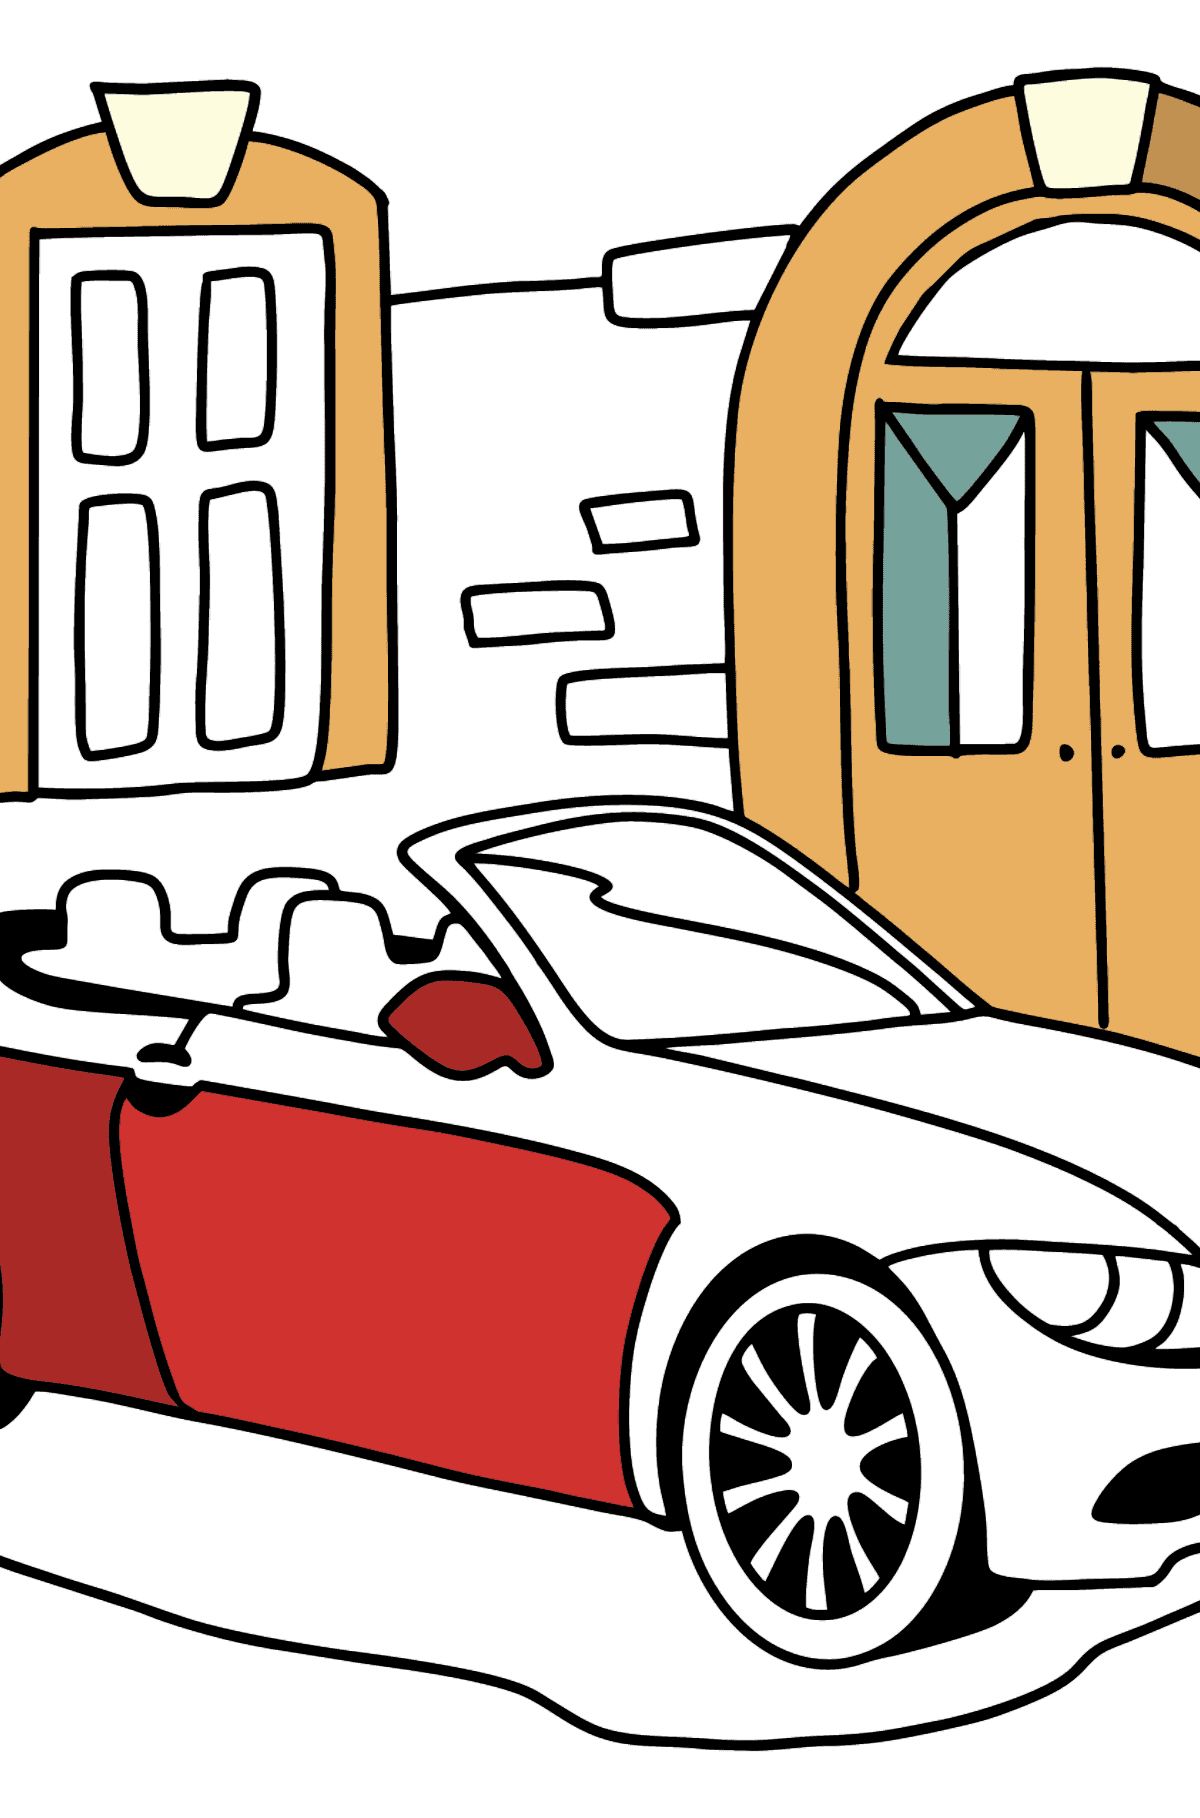 BMW Convertible coloring page - Coloring Pages for Kids